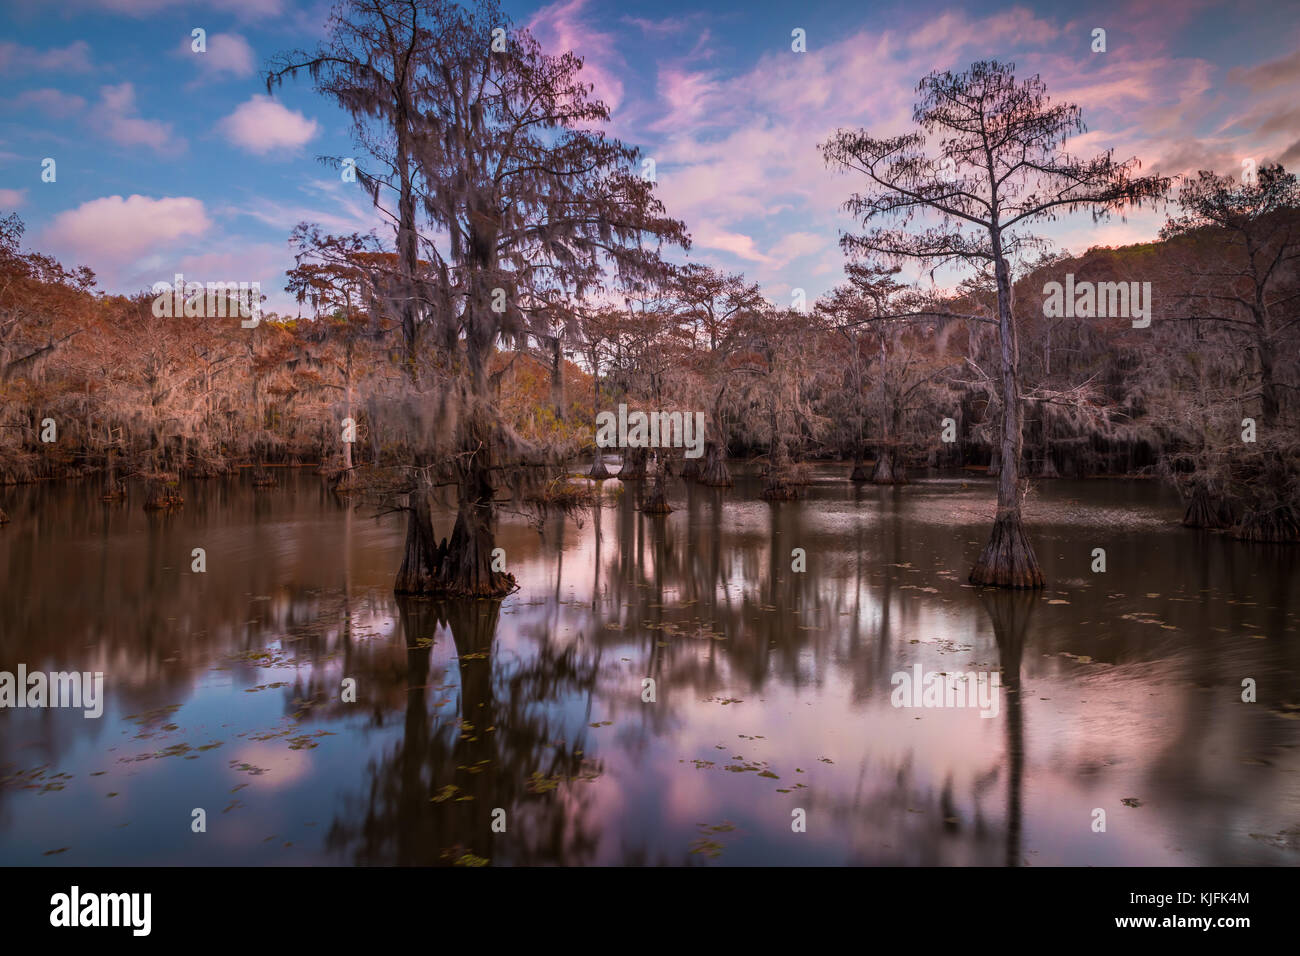 Caddo Lake is a lake and wetland located on the border between Texas and Louisiana. - Stock Image